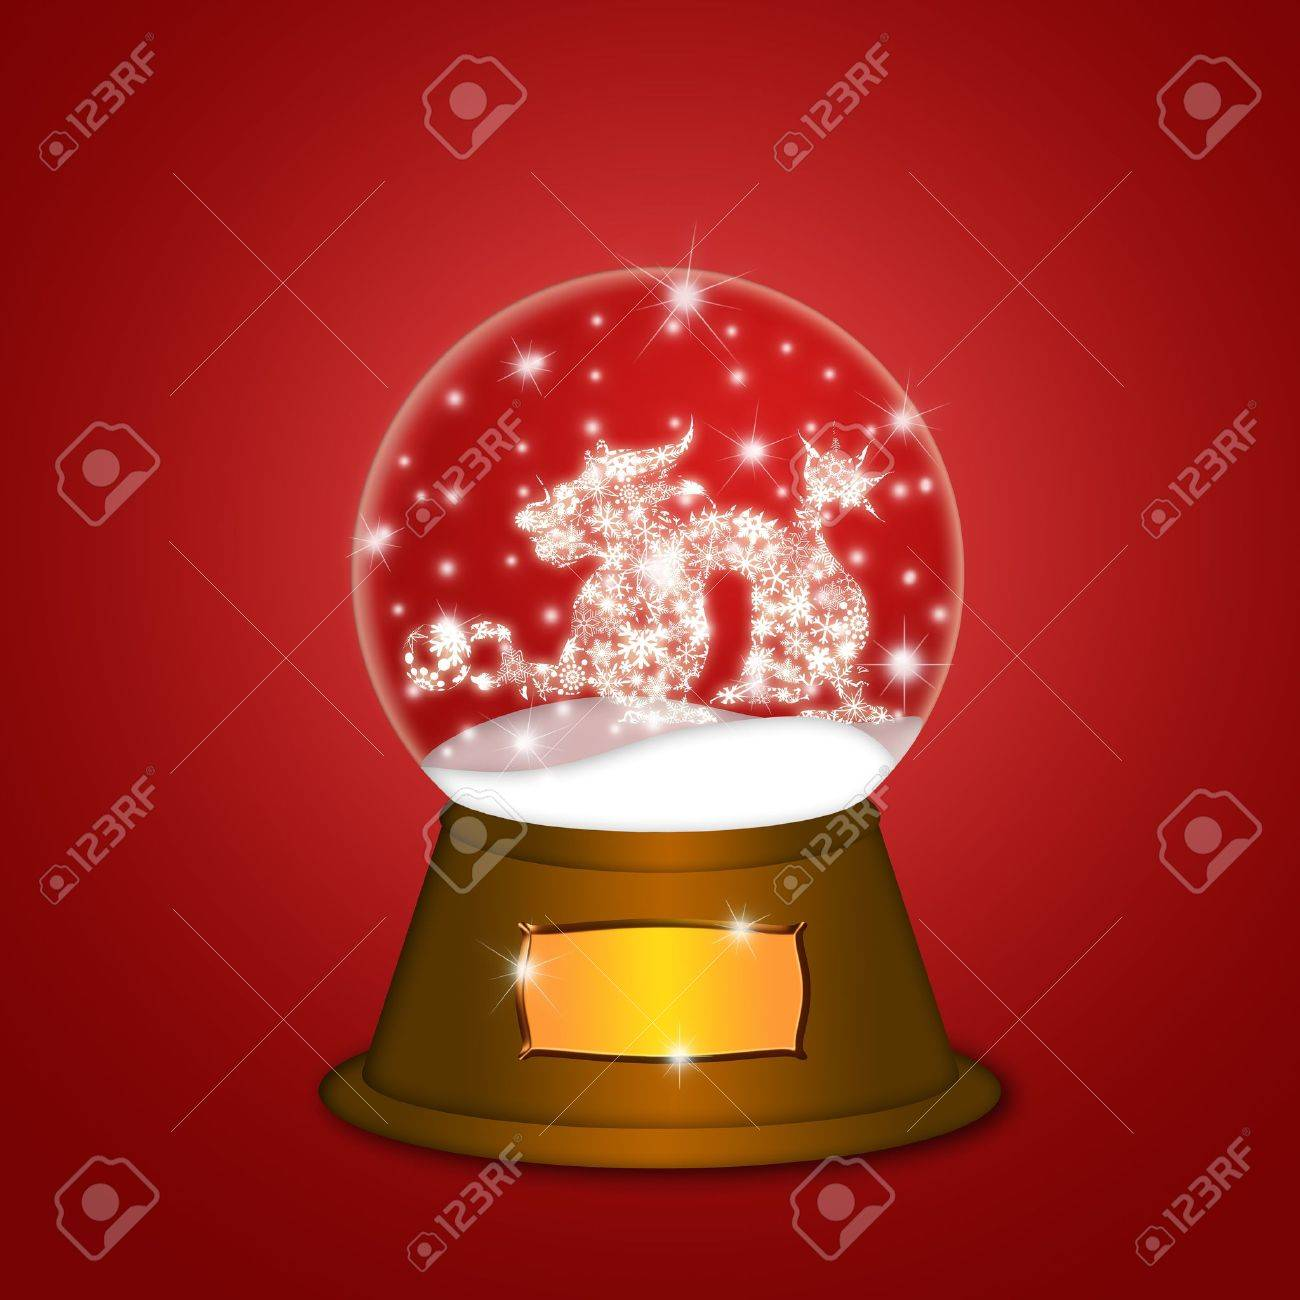 Water Snow Globe with Chinese Dragon and Ball Illustration on Red Background Stock Illustration - 11585757